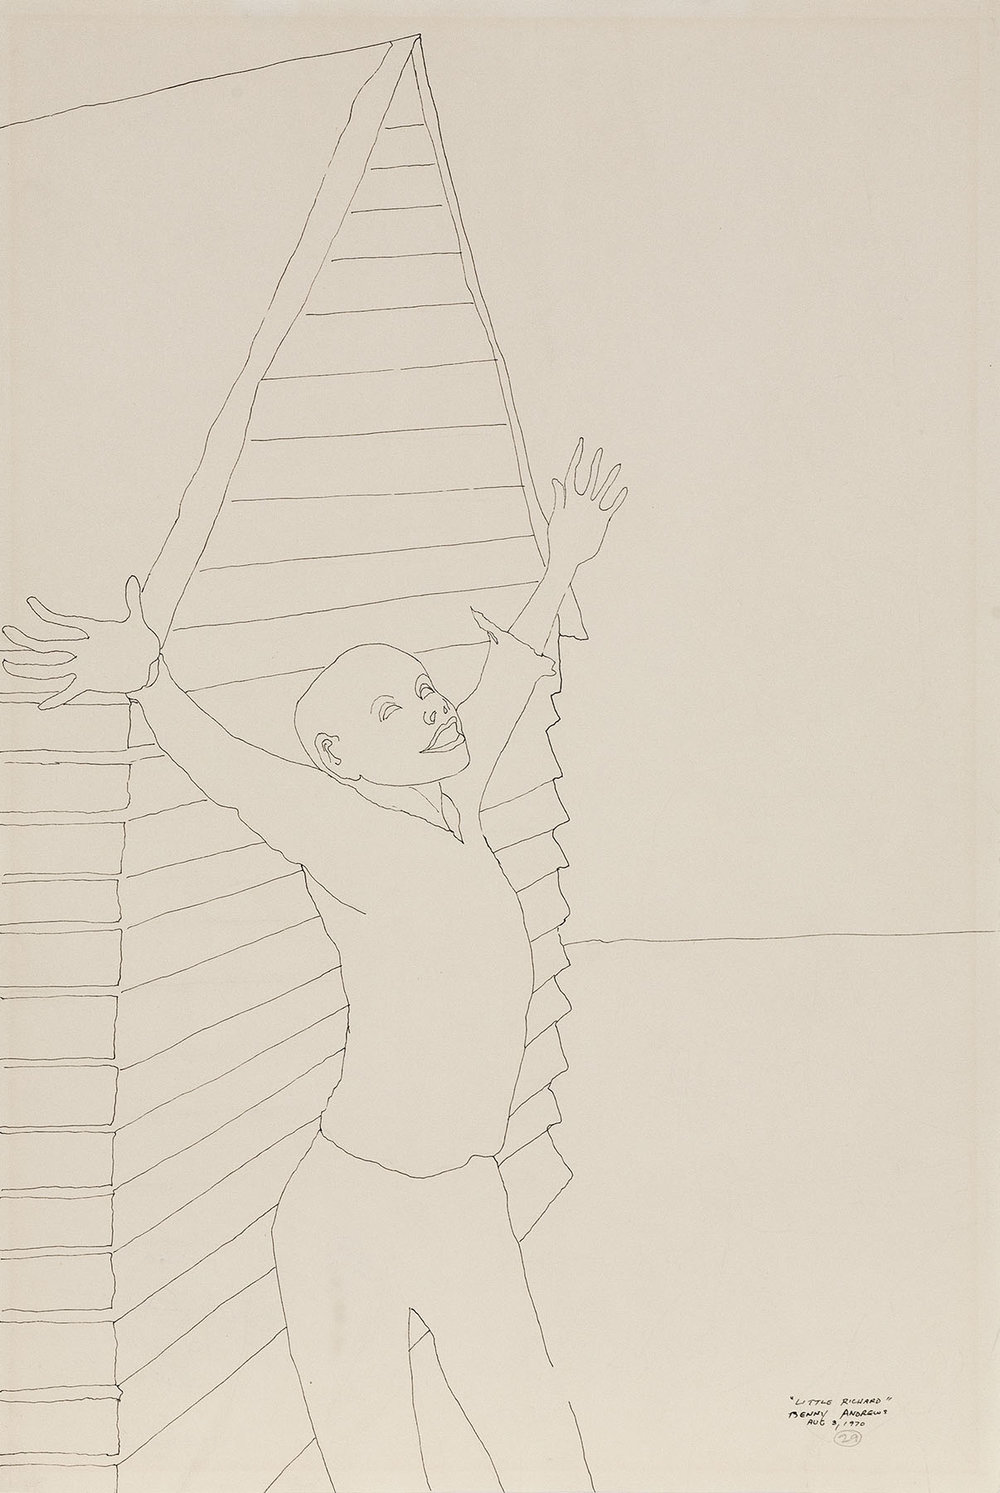 Andrews, Little Richard (Study for Symbols)-IMAGE ONLY.jpg